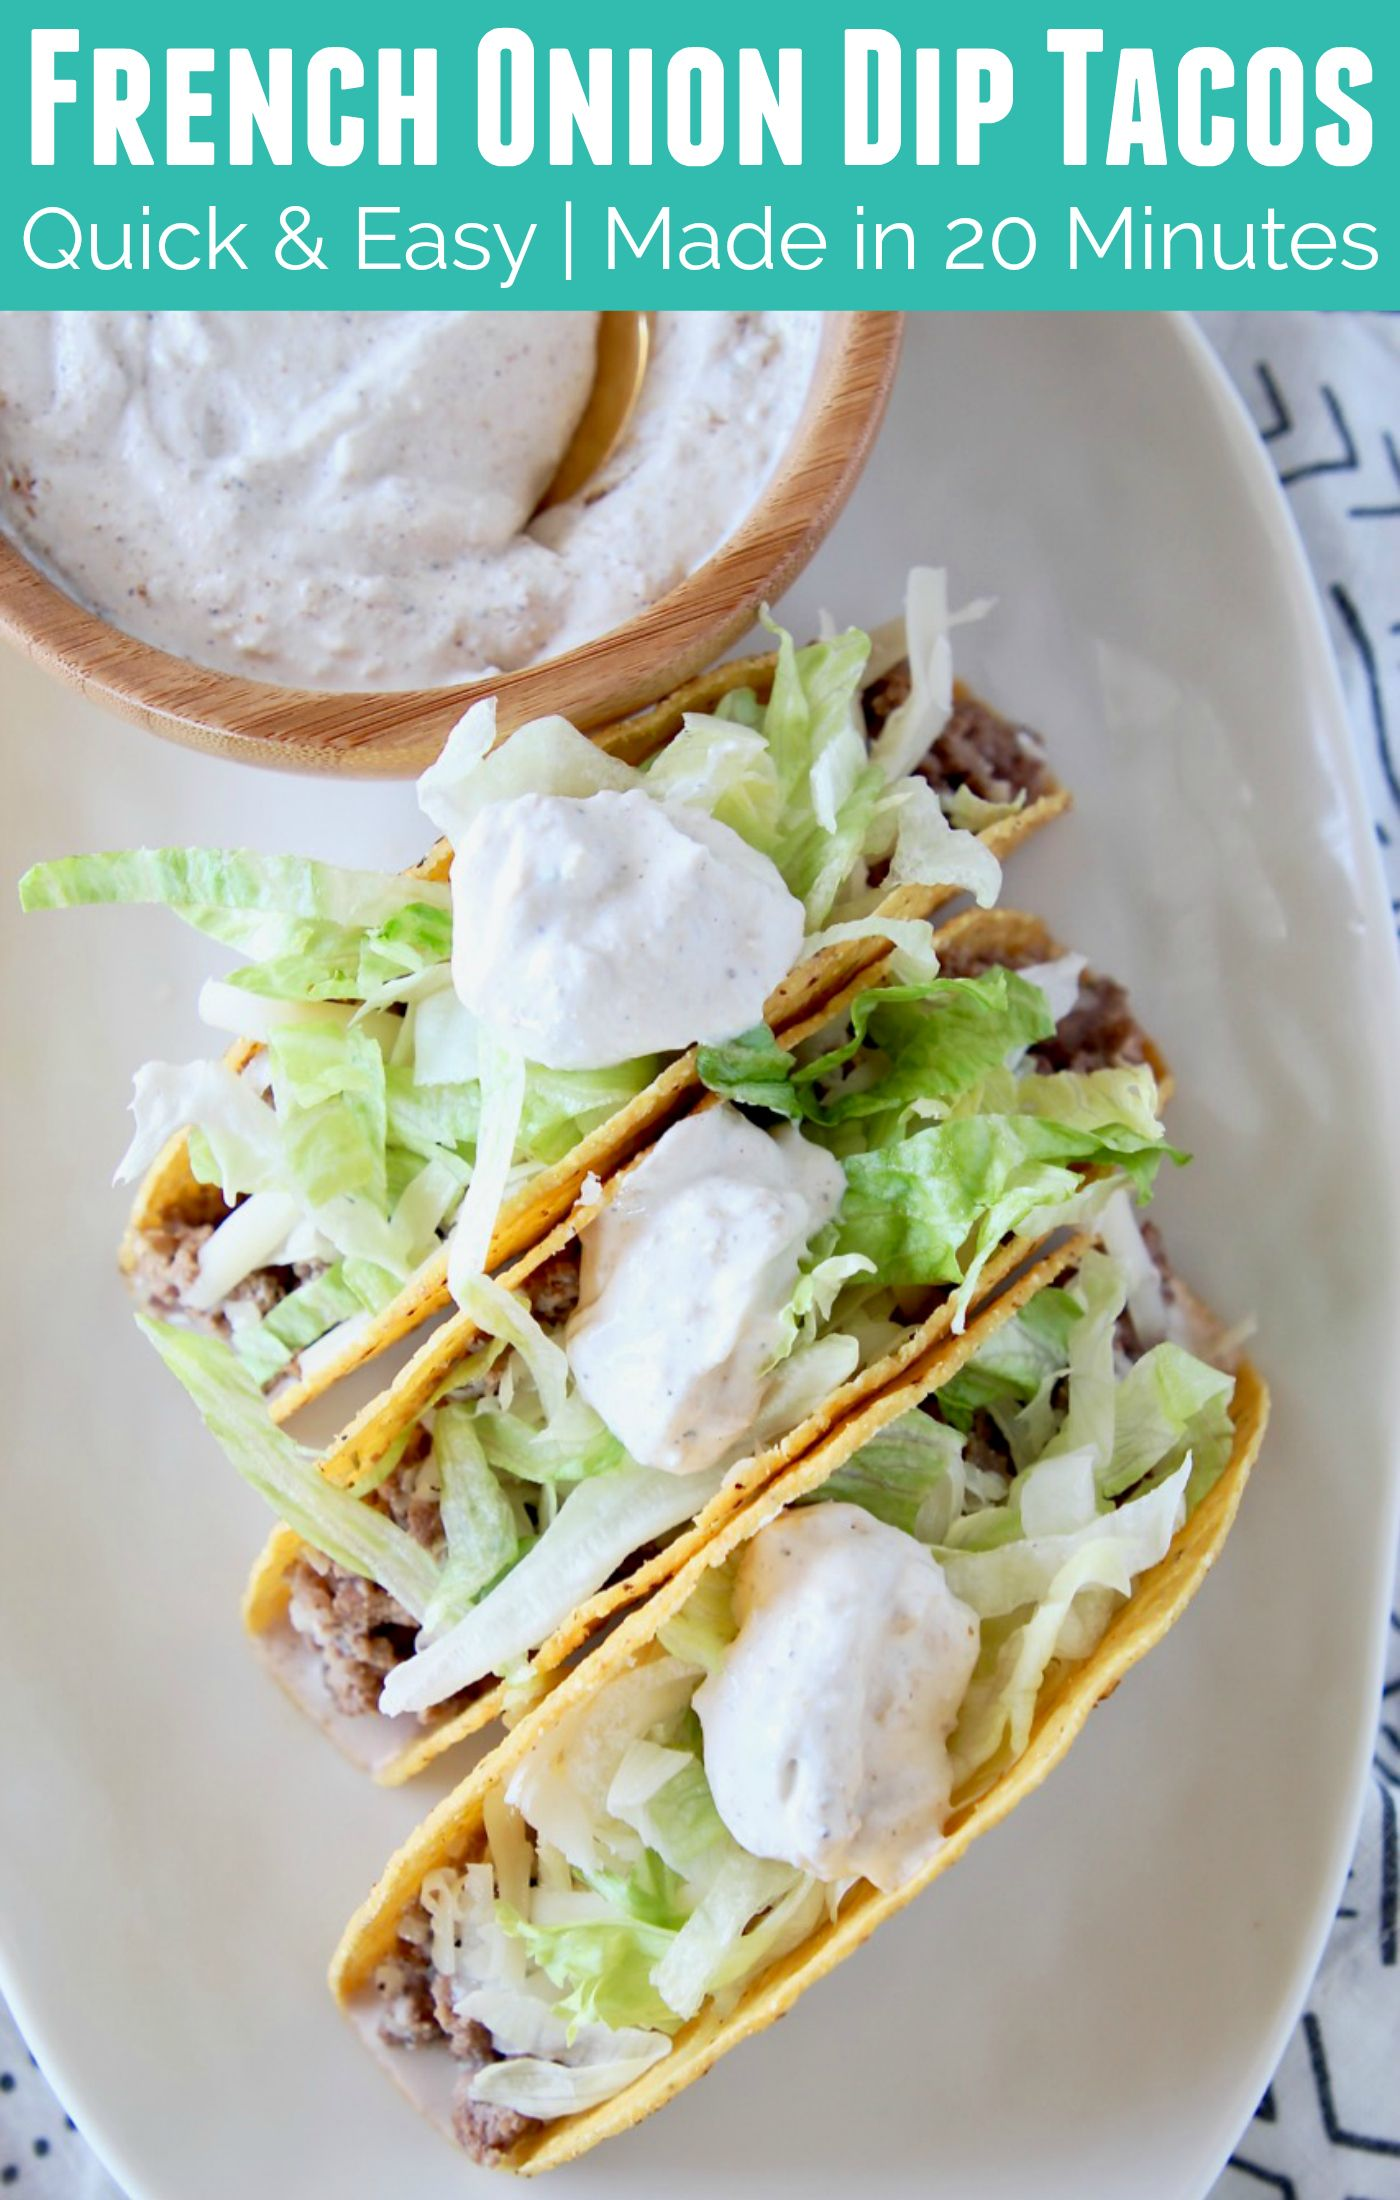 Creamy French Onion Dip Adds A Delicious Twist To These Ground Beef Tacos The Entire Recipe Is Made In Just 20 Mi French Onion Dip Ground Beef Tacos Onion Dip